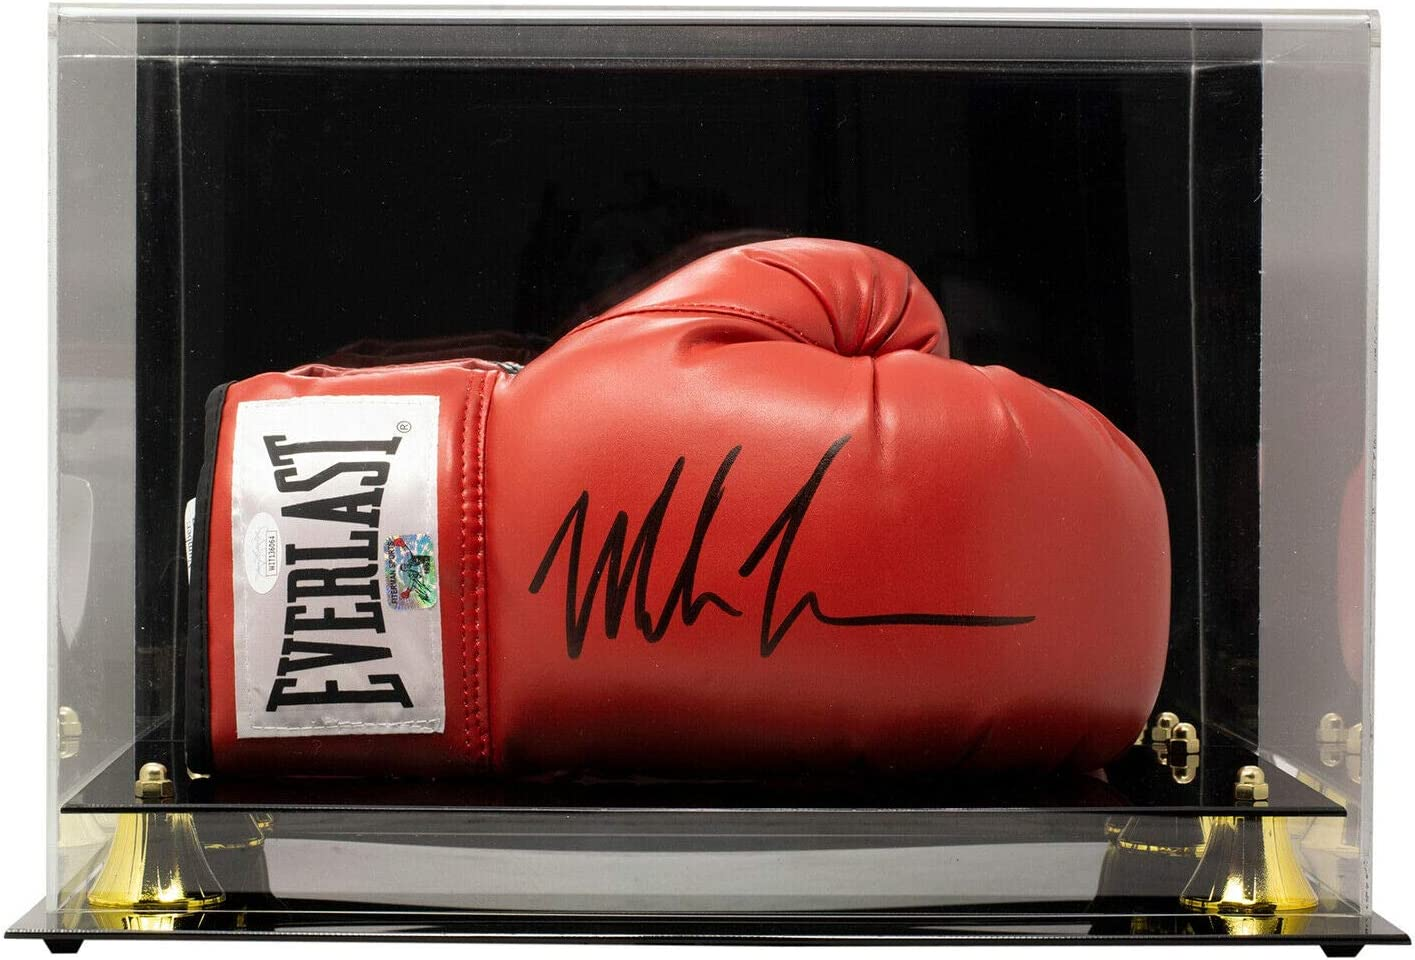 Mike Tyson Signed Everlast Boxing Glove Presented In An Acrylic Case